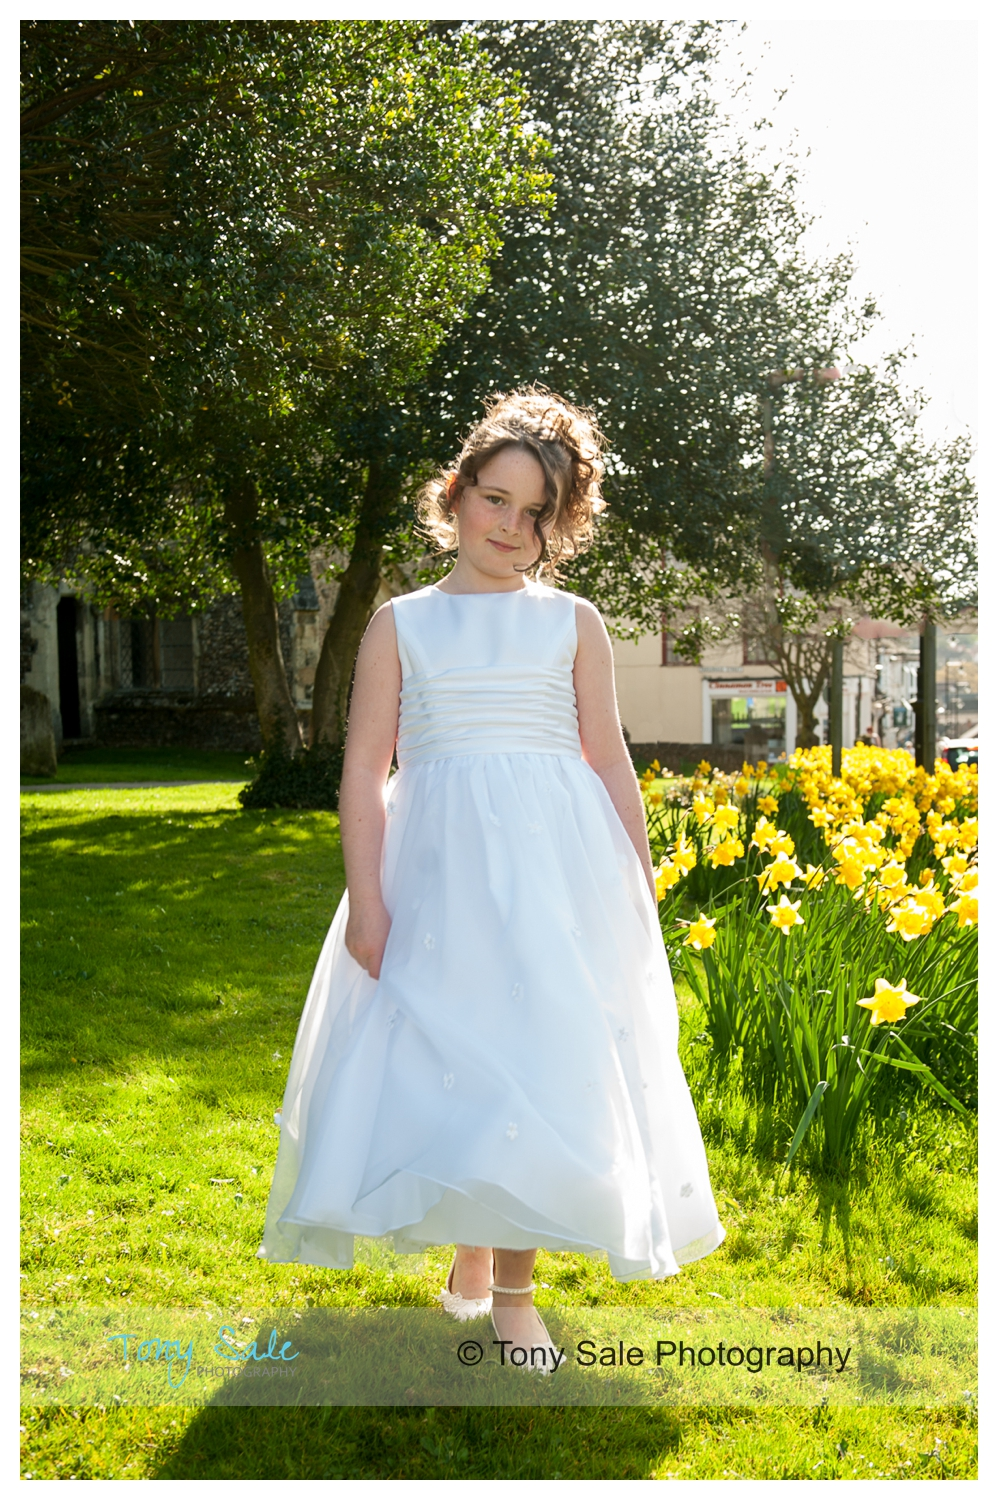 First Communion Dresses Essex_Tony Sale Photography_01